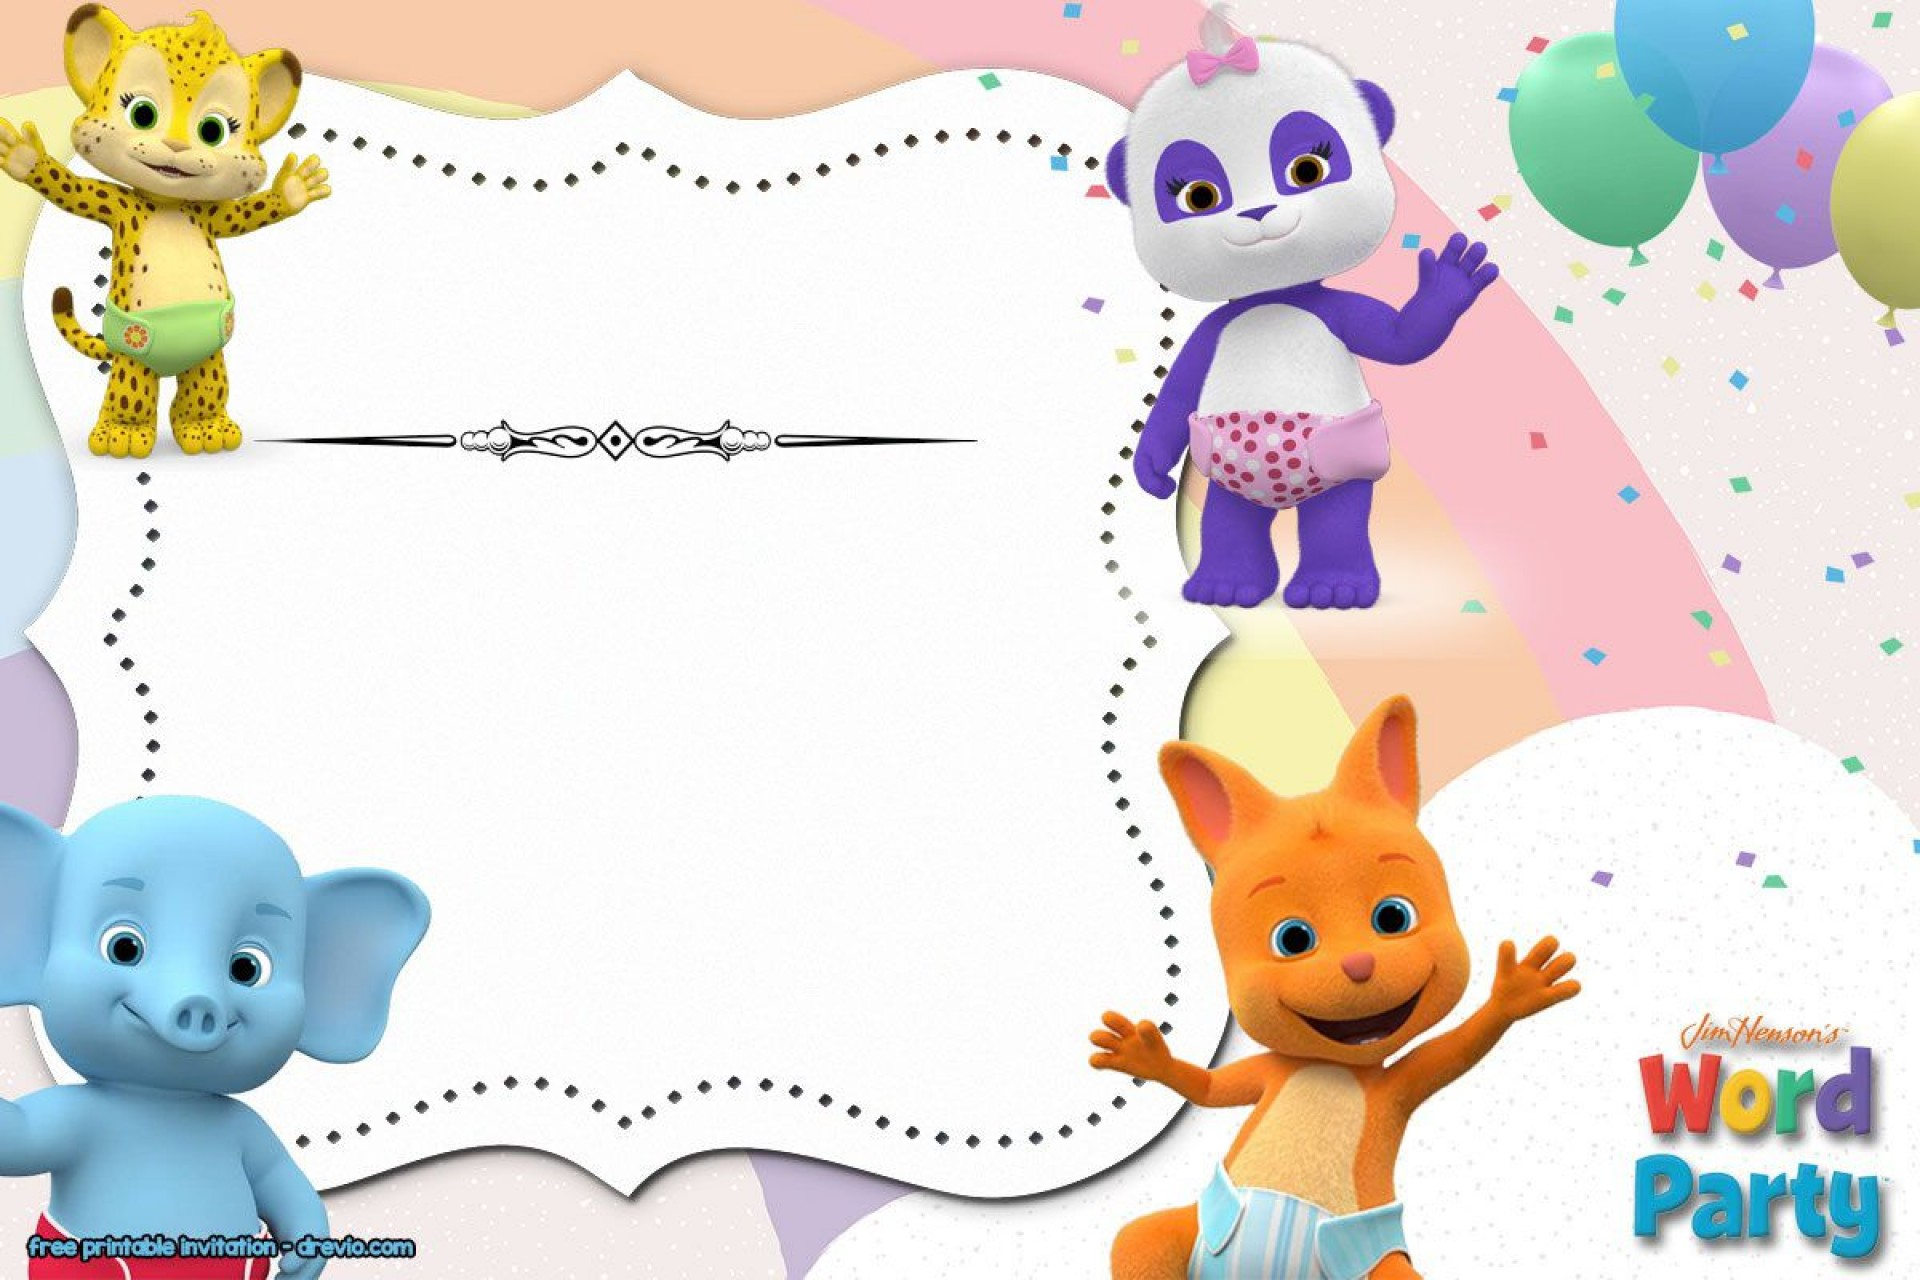 008 Unusual Birthday Invite Template Word Free High Definition  Party Invitation1920